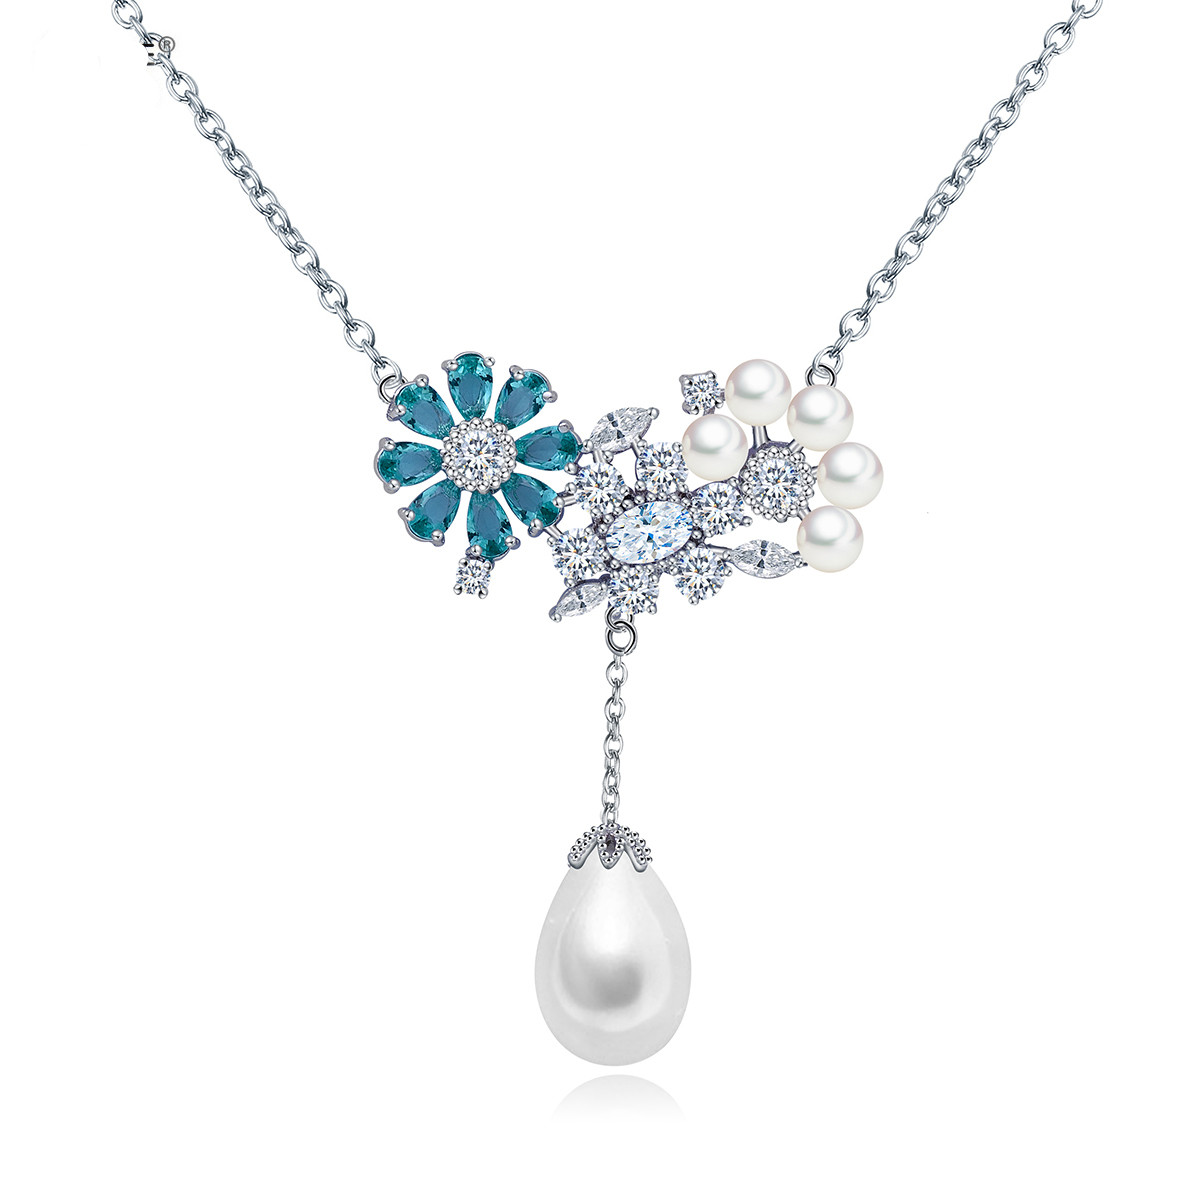 Online get cheap flower girl gifts aliexpress alibaba group charm flower tear drop pearl pendant necklace cubic zircon crystal wedding party collar jewelry accessories ol style girls gift dhlflorist Image collections